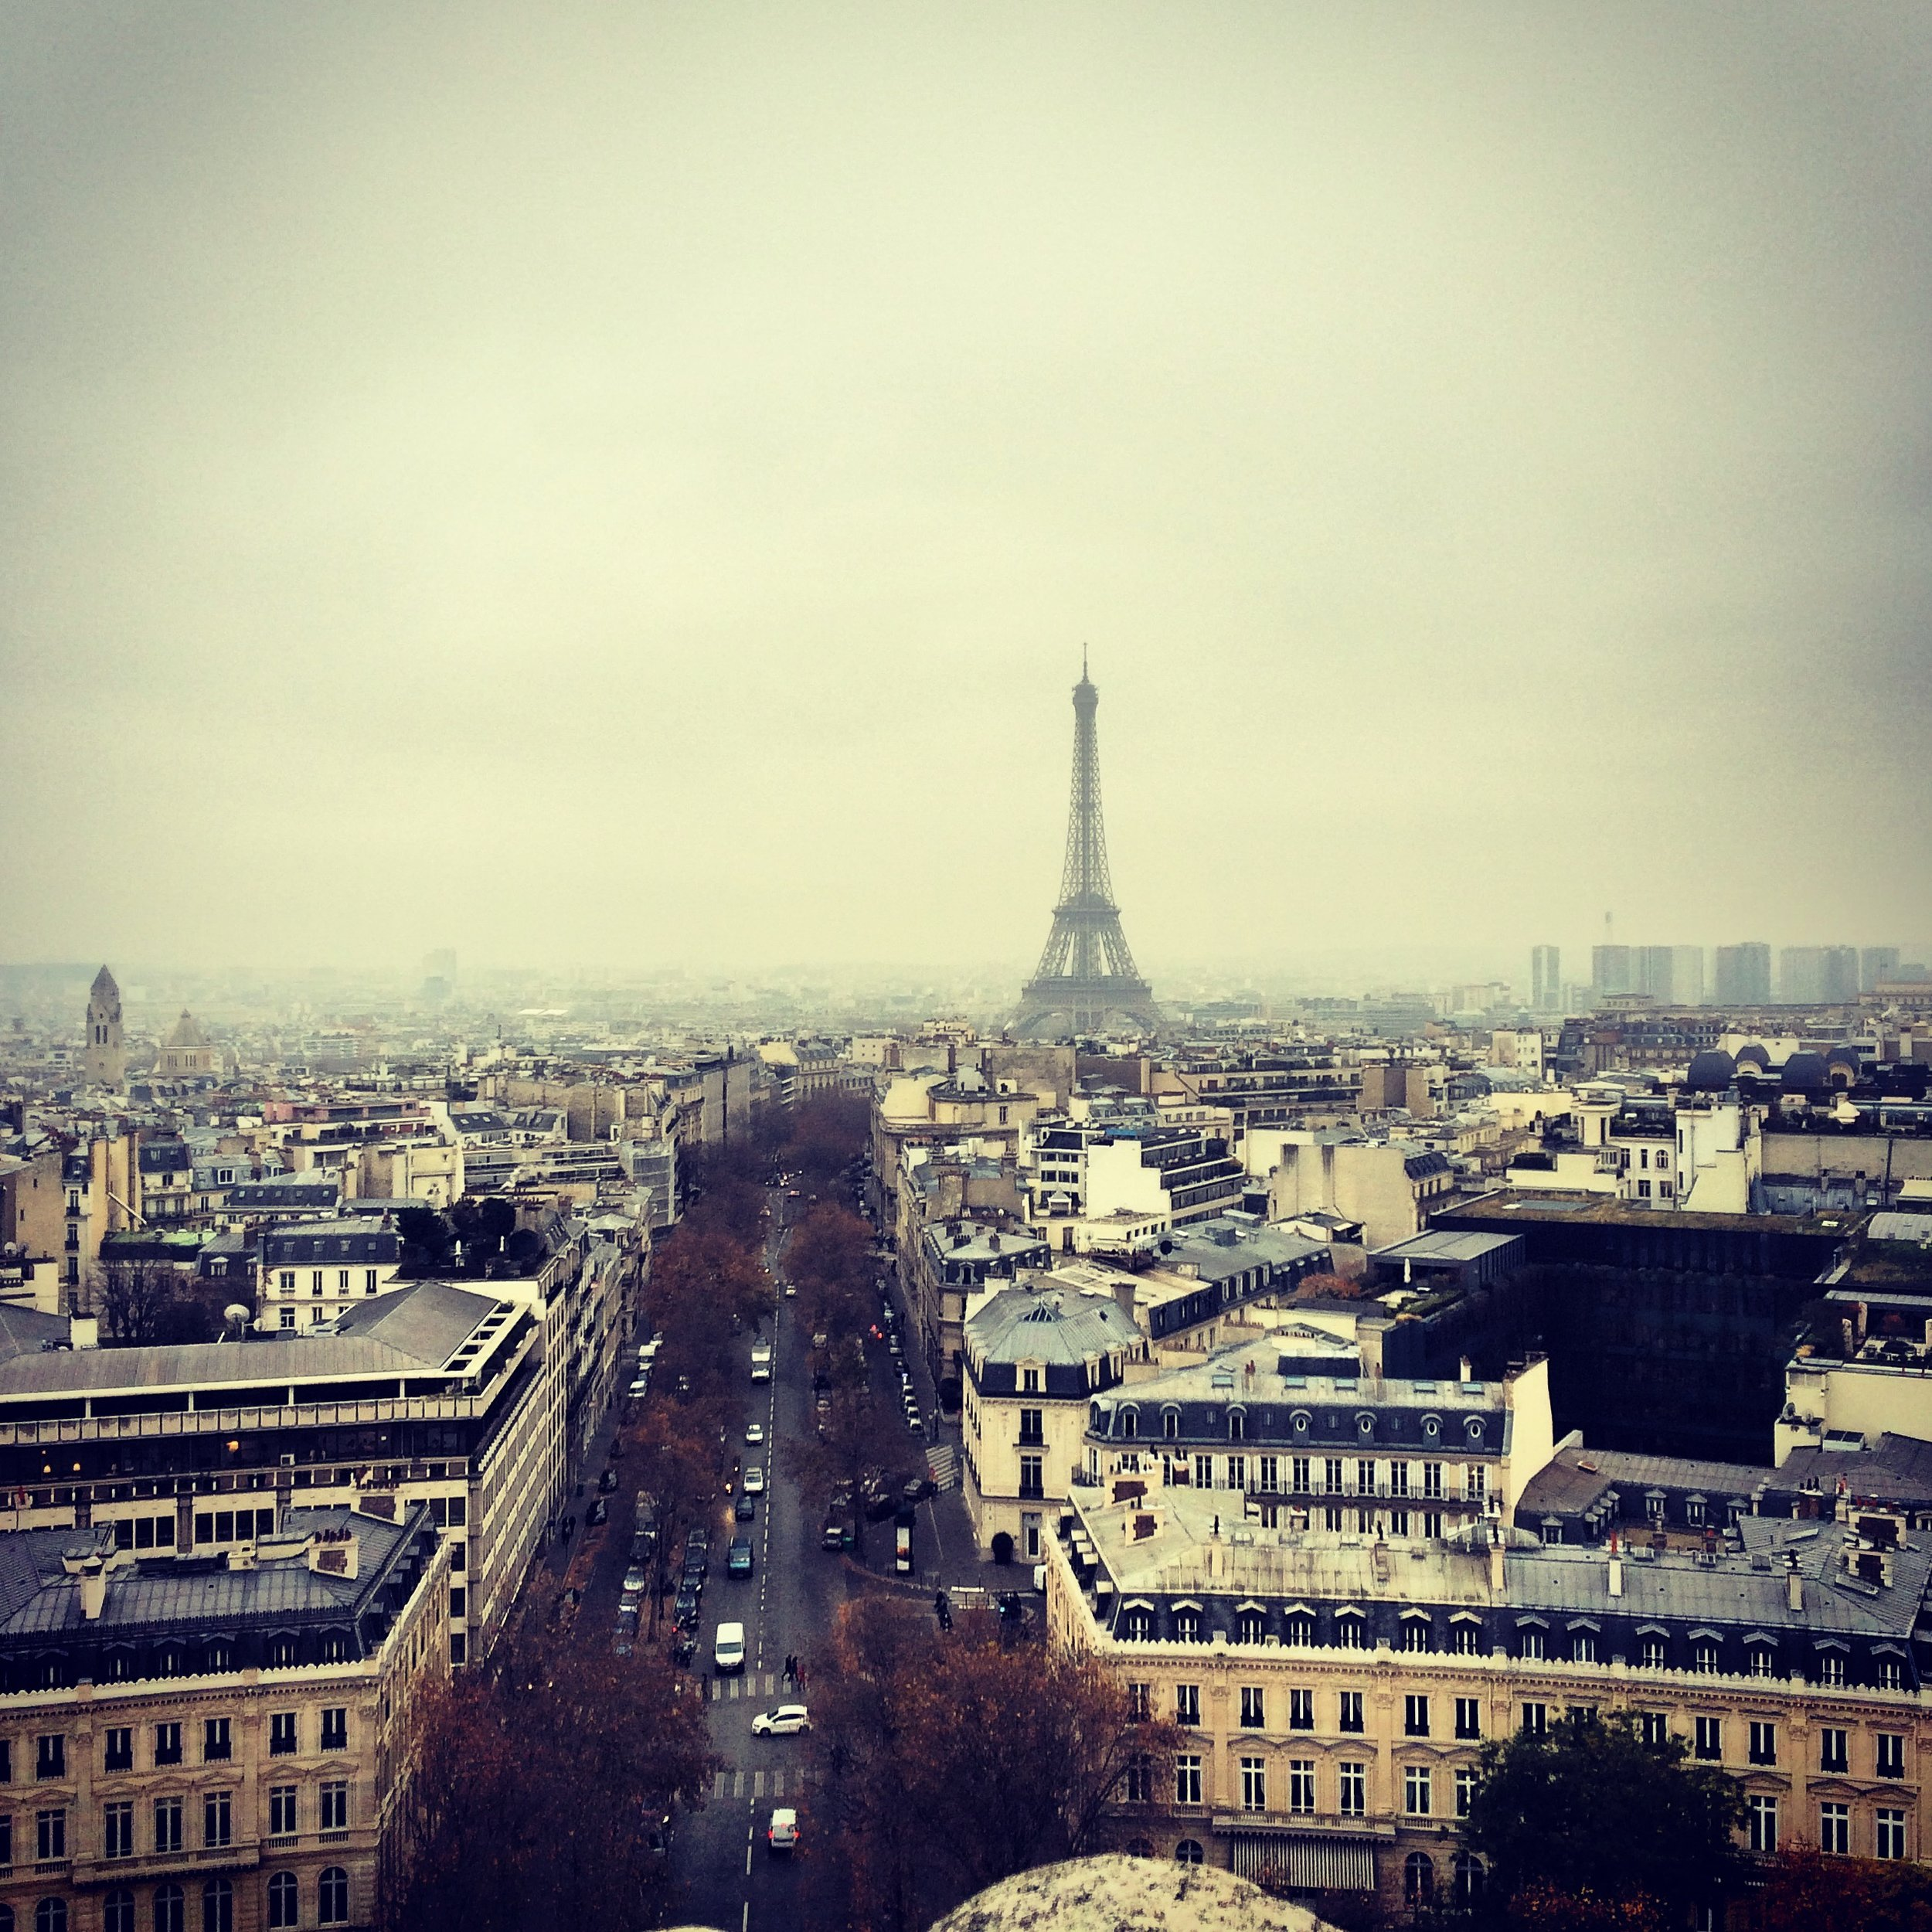 When I was in Paris I went up the Arc de Triomphe and took a picture of the Eiffel Tower